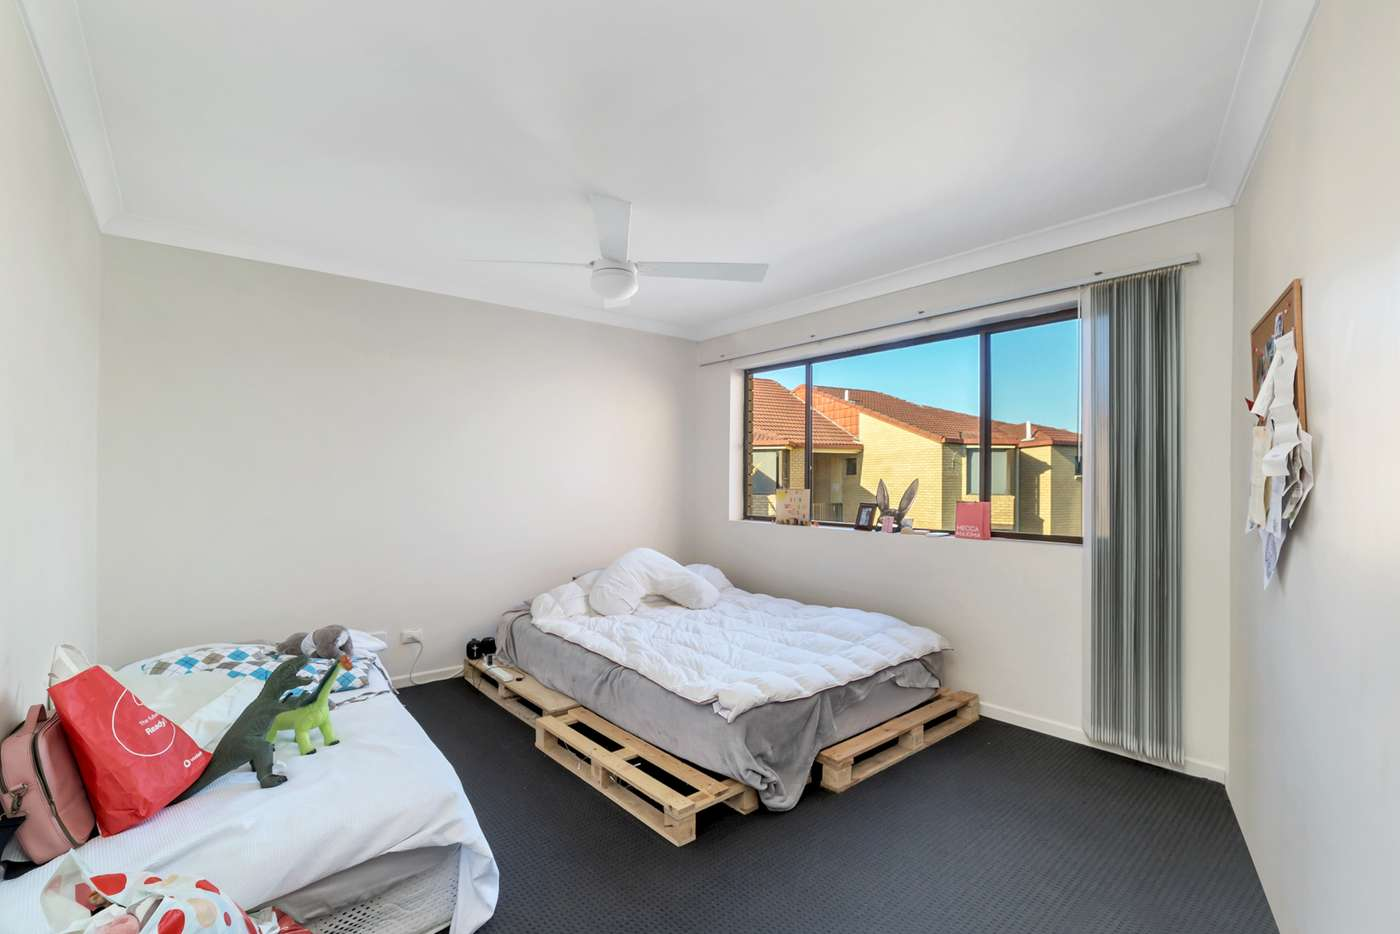 Sixth view of Homely unit listing, 34/44 Brisbane Street, Toowong QLD 4066